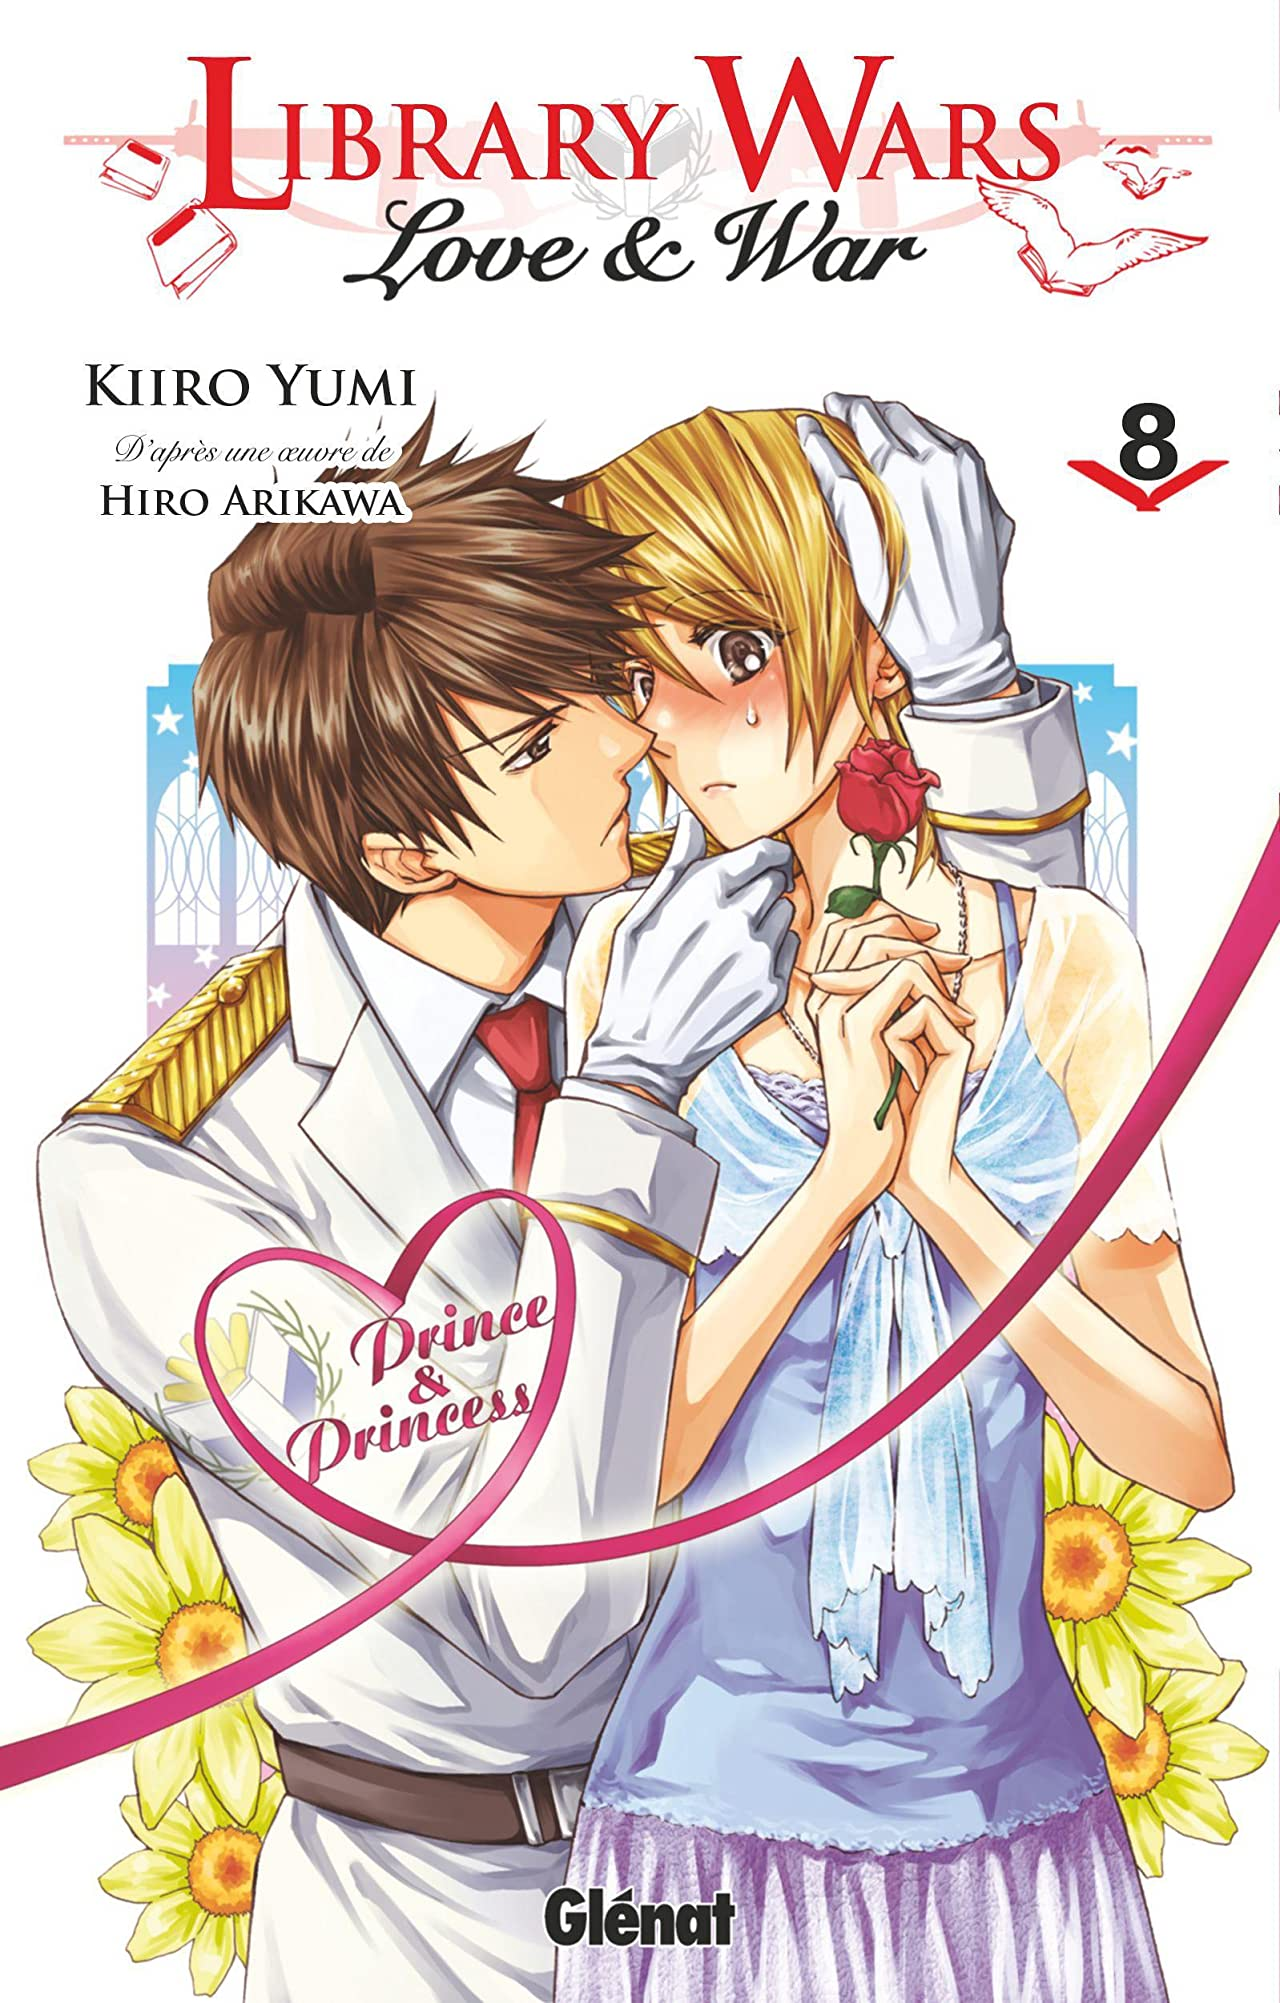 Library Wars - Love and War Vol. 8